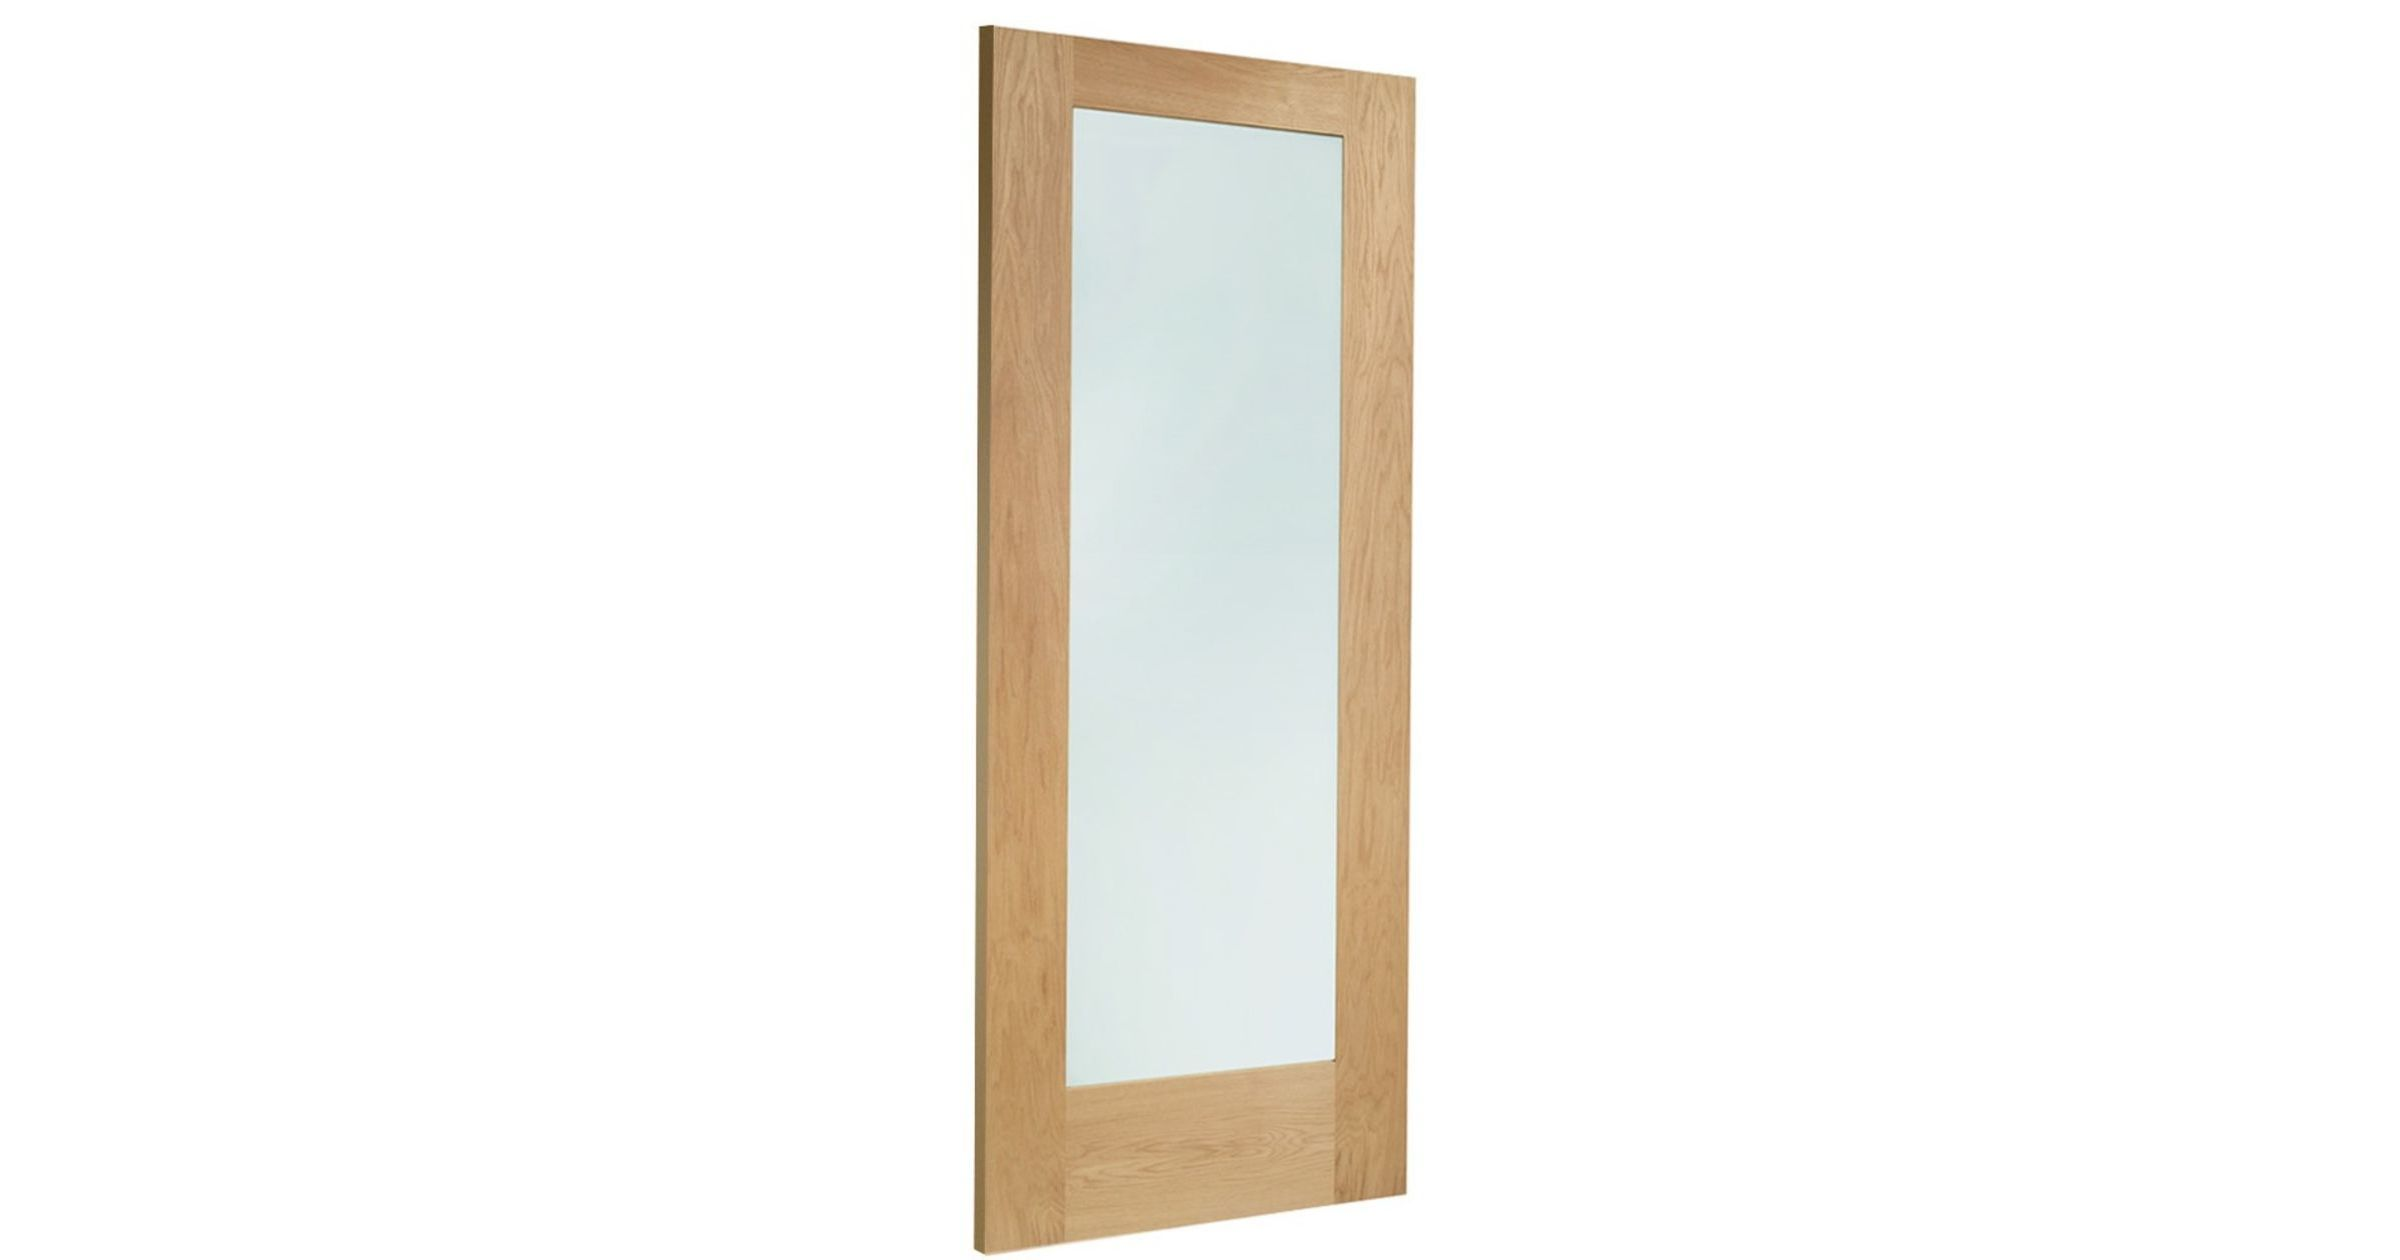 Pattern 10 Glazed Door: 1-light *Double Glazed* *Unfinished Oak* Dowel 44mm External Door - XL Doors